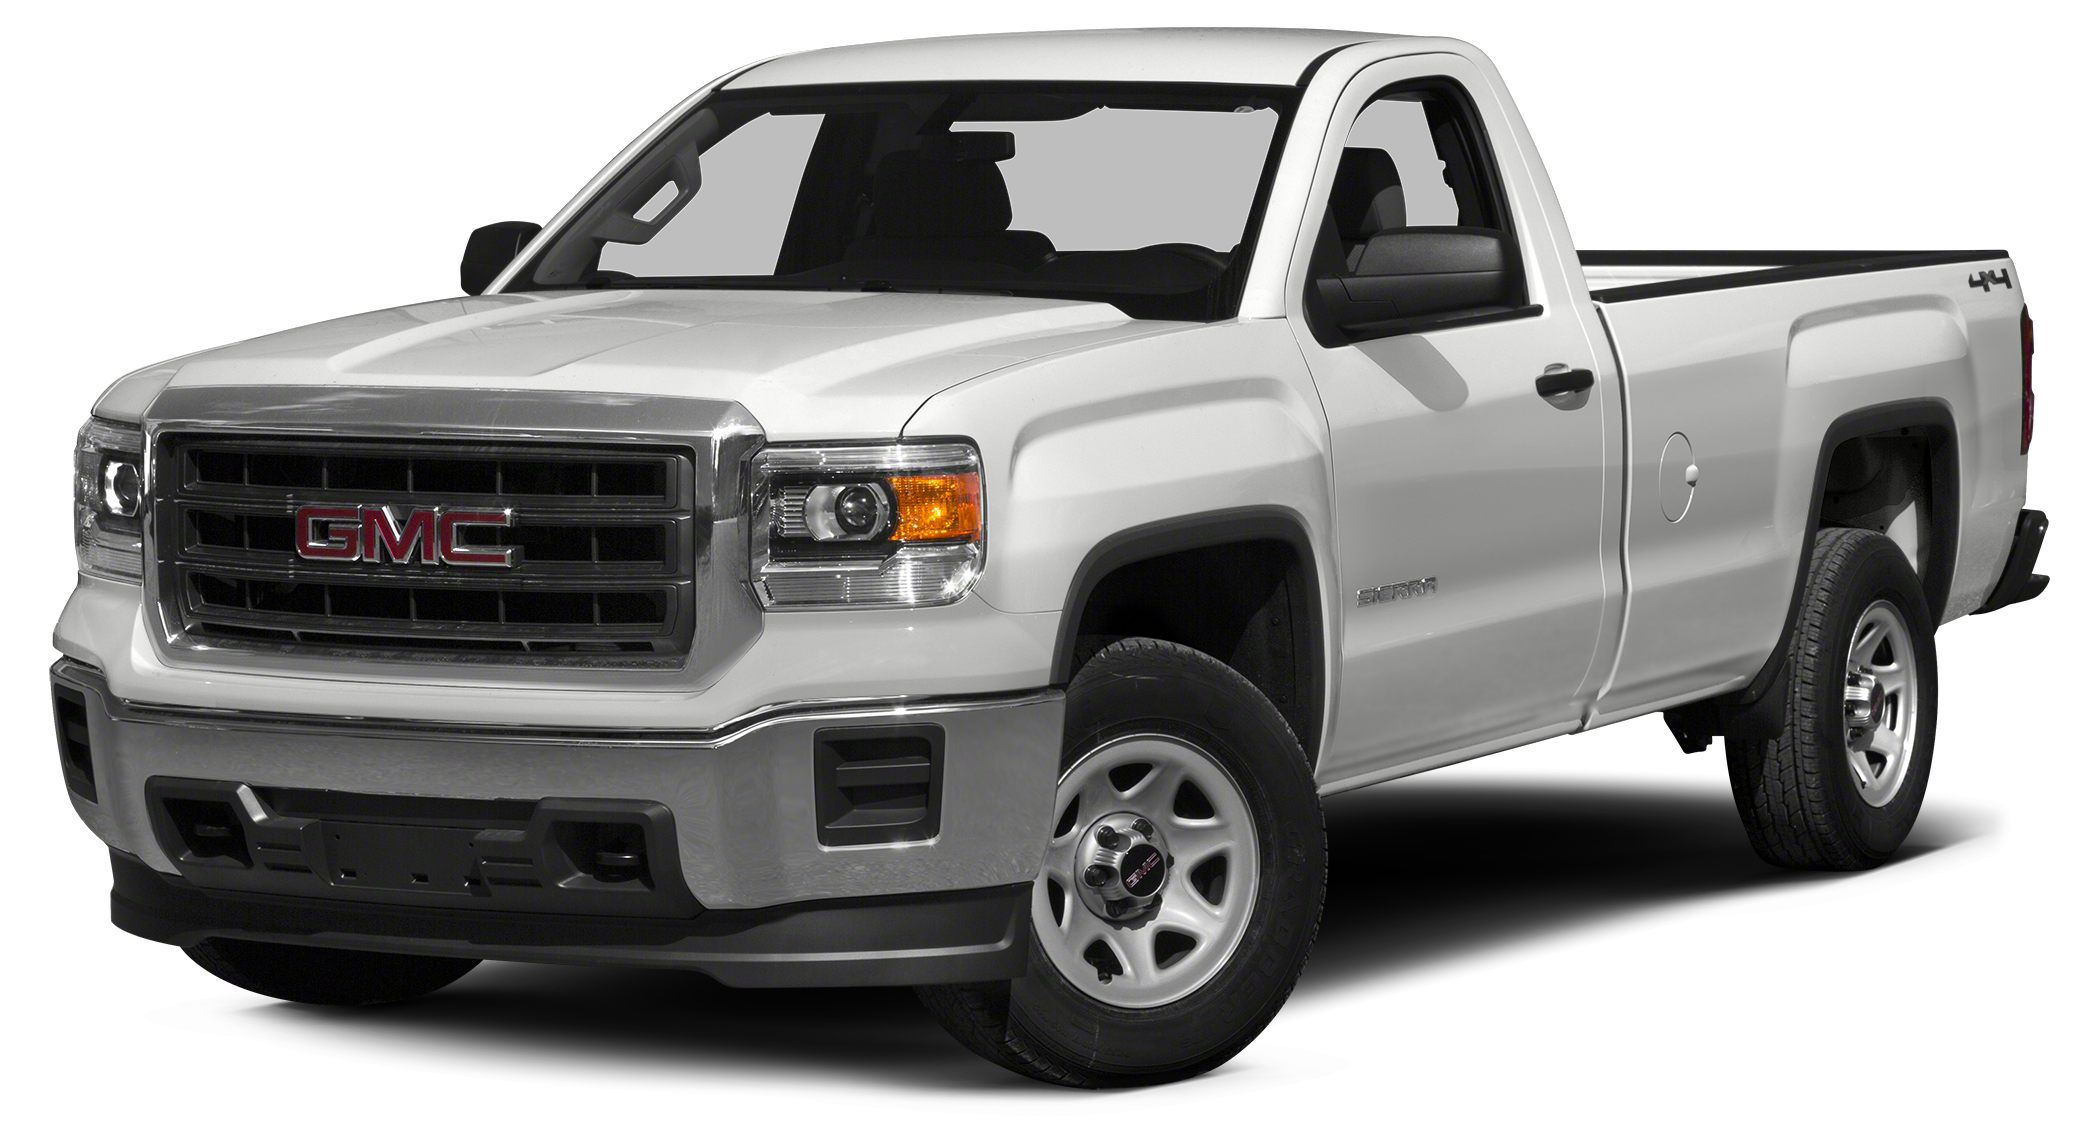 2015 GMC Sierra 1500 Base PRICED TO MOVE 200 below Kelley Blue Book FUEL EFFICIENT 24 MPG Hwy1